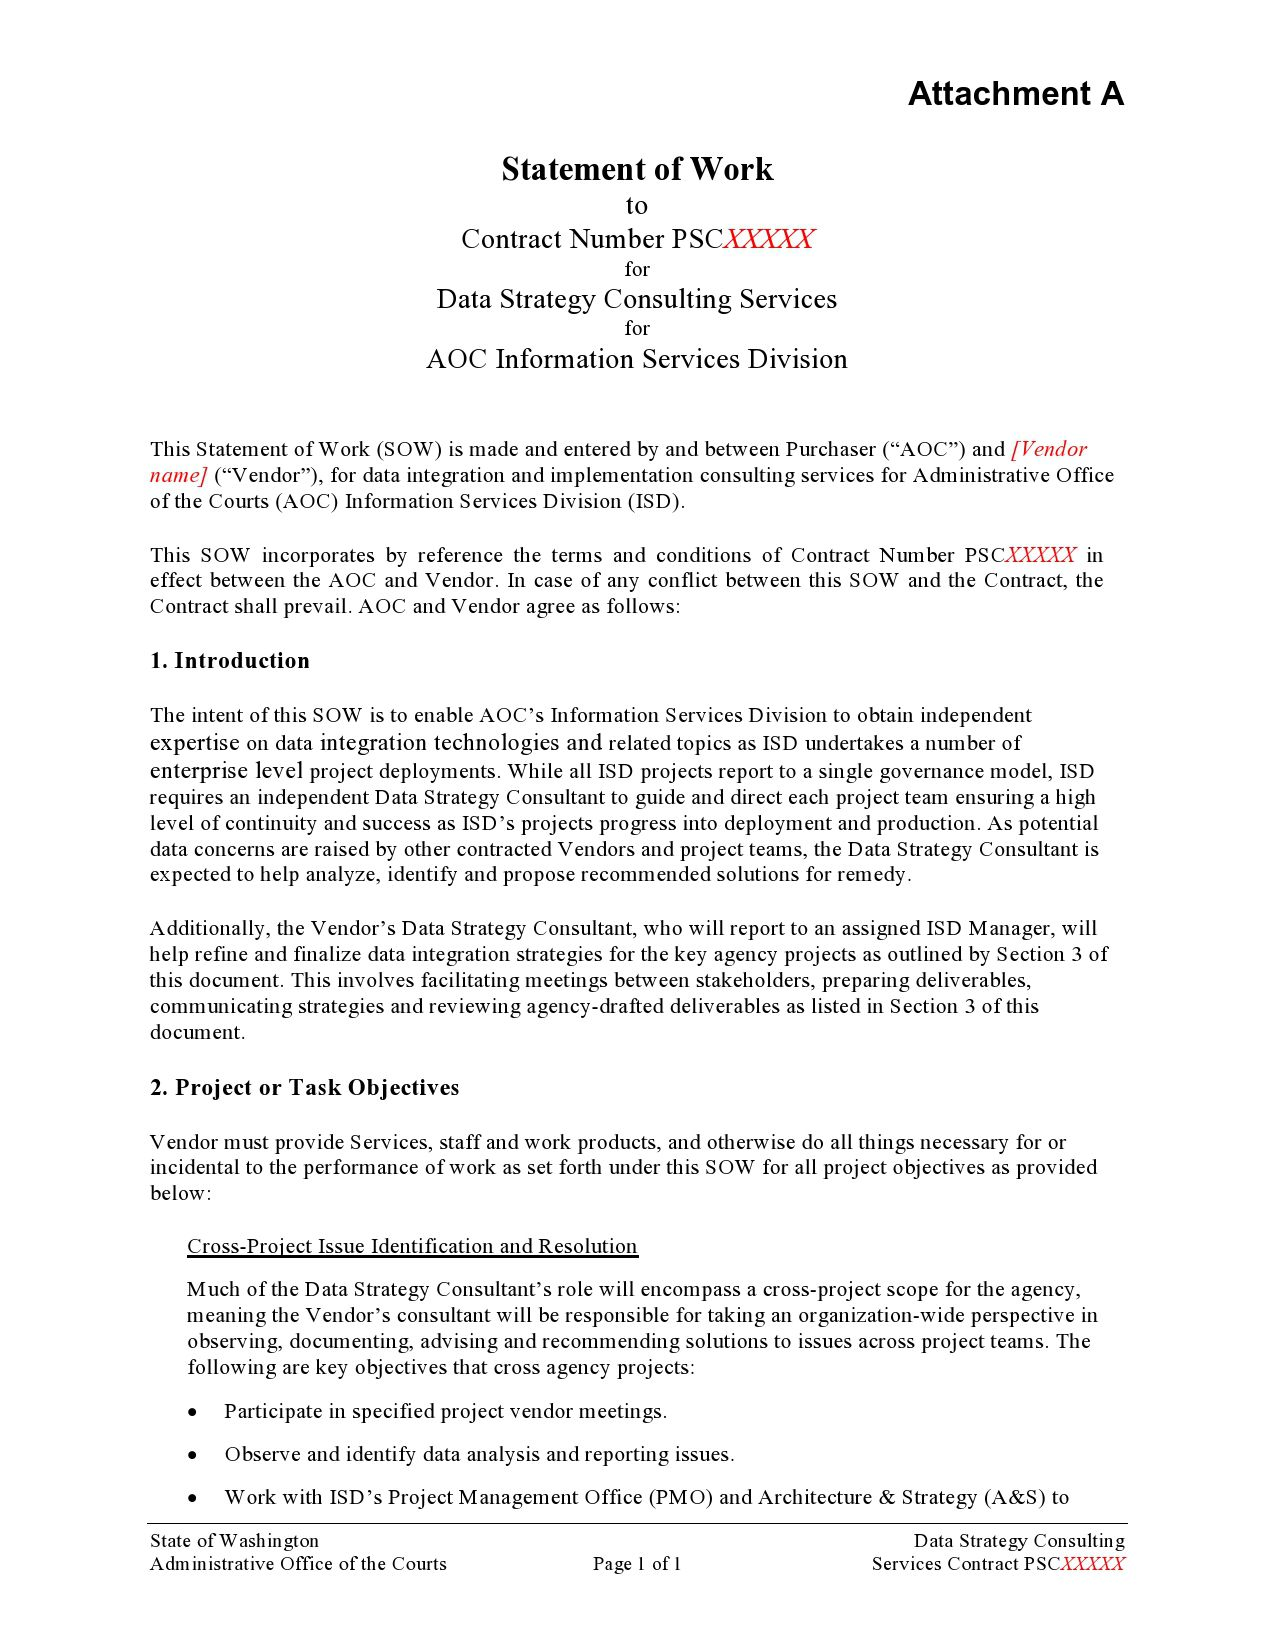 009 Astounding Statement Of Work For Consulting Service Example Idea  SampleFull